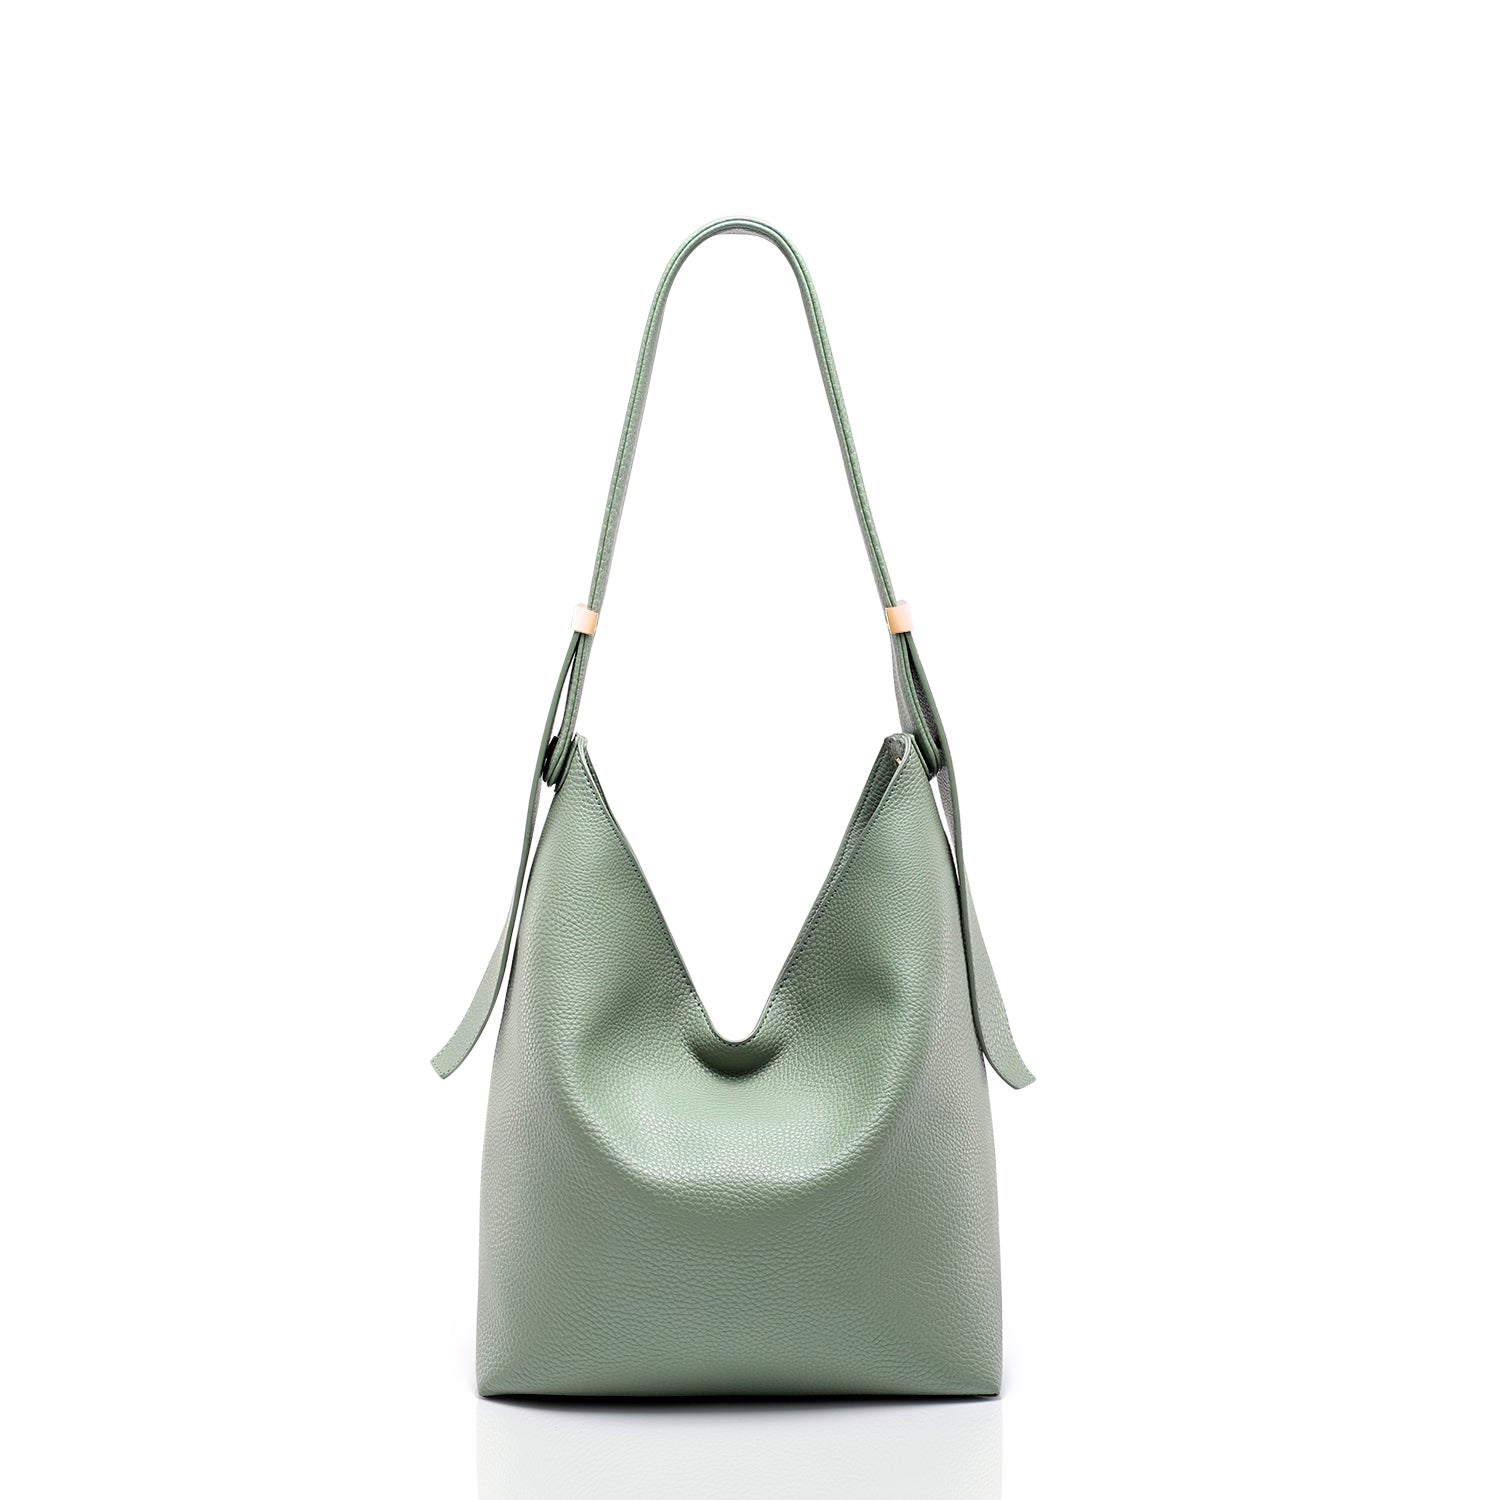 RIBAG HOBO MINI - TEAL